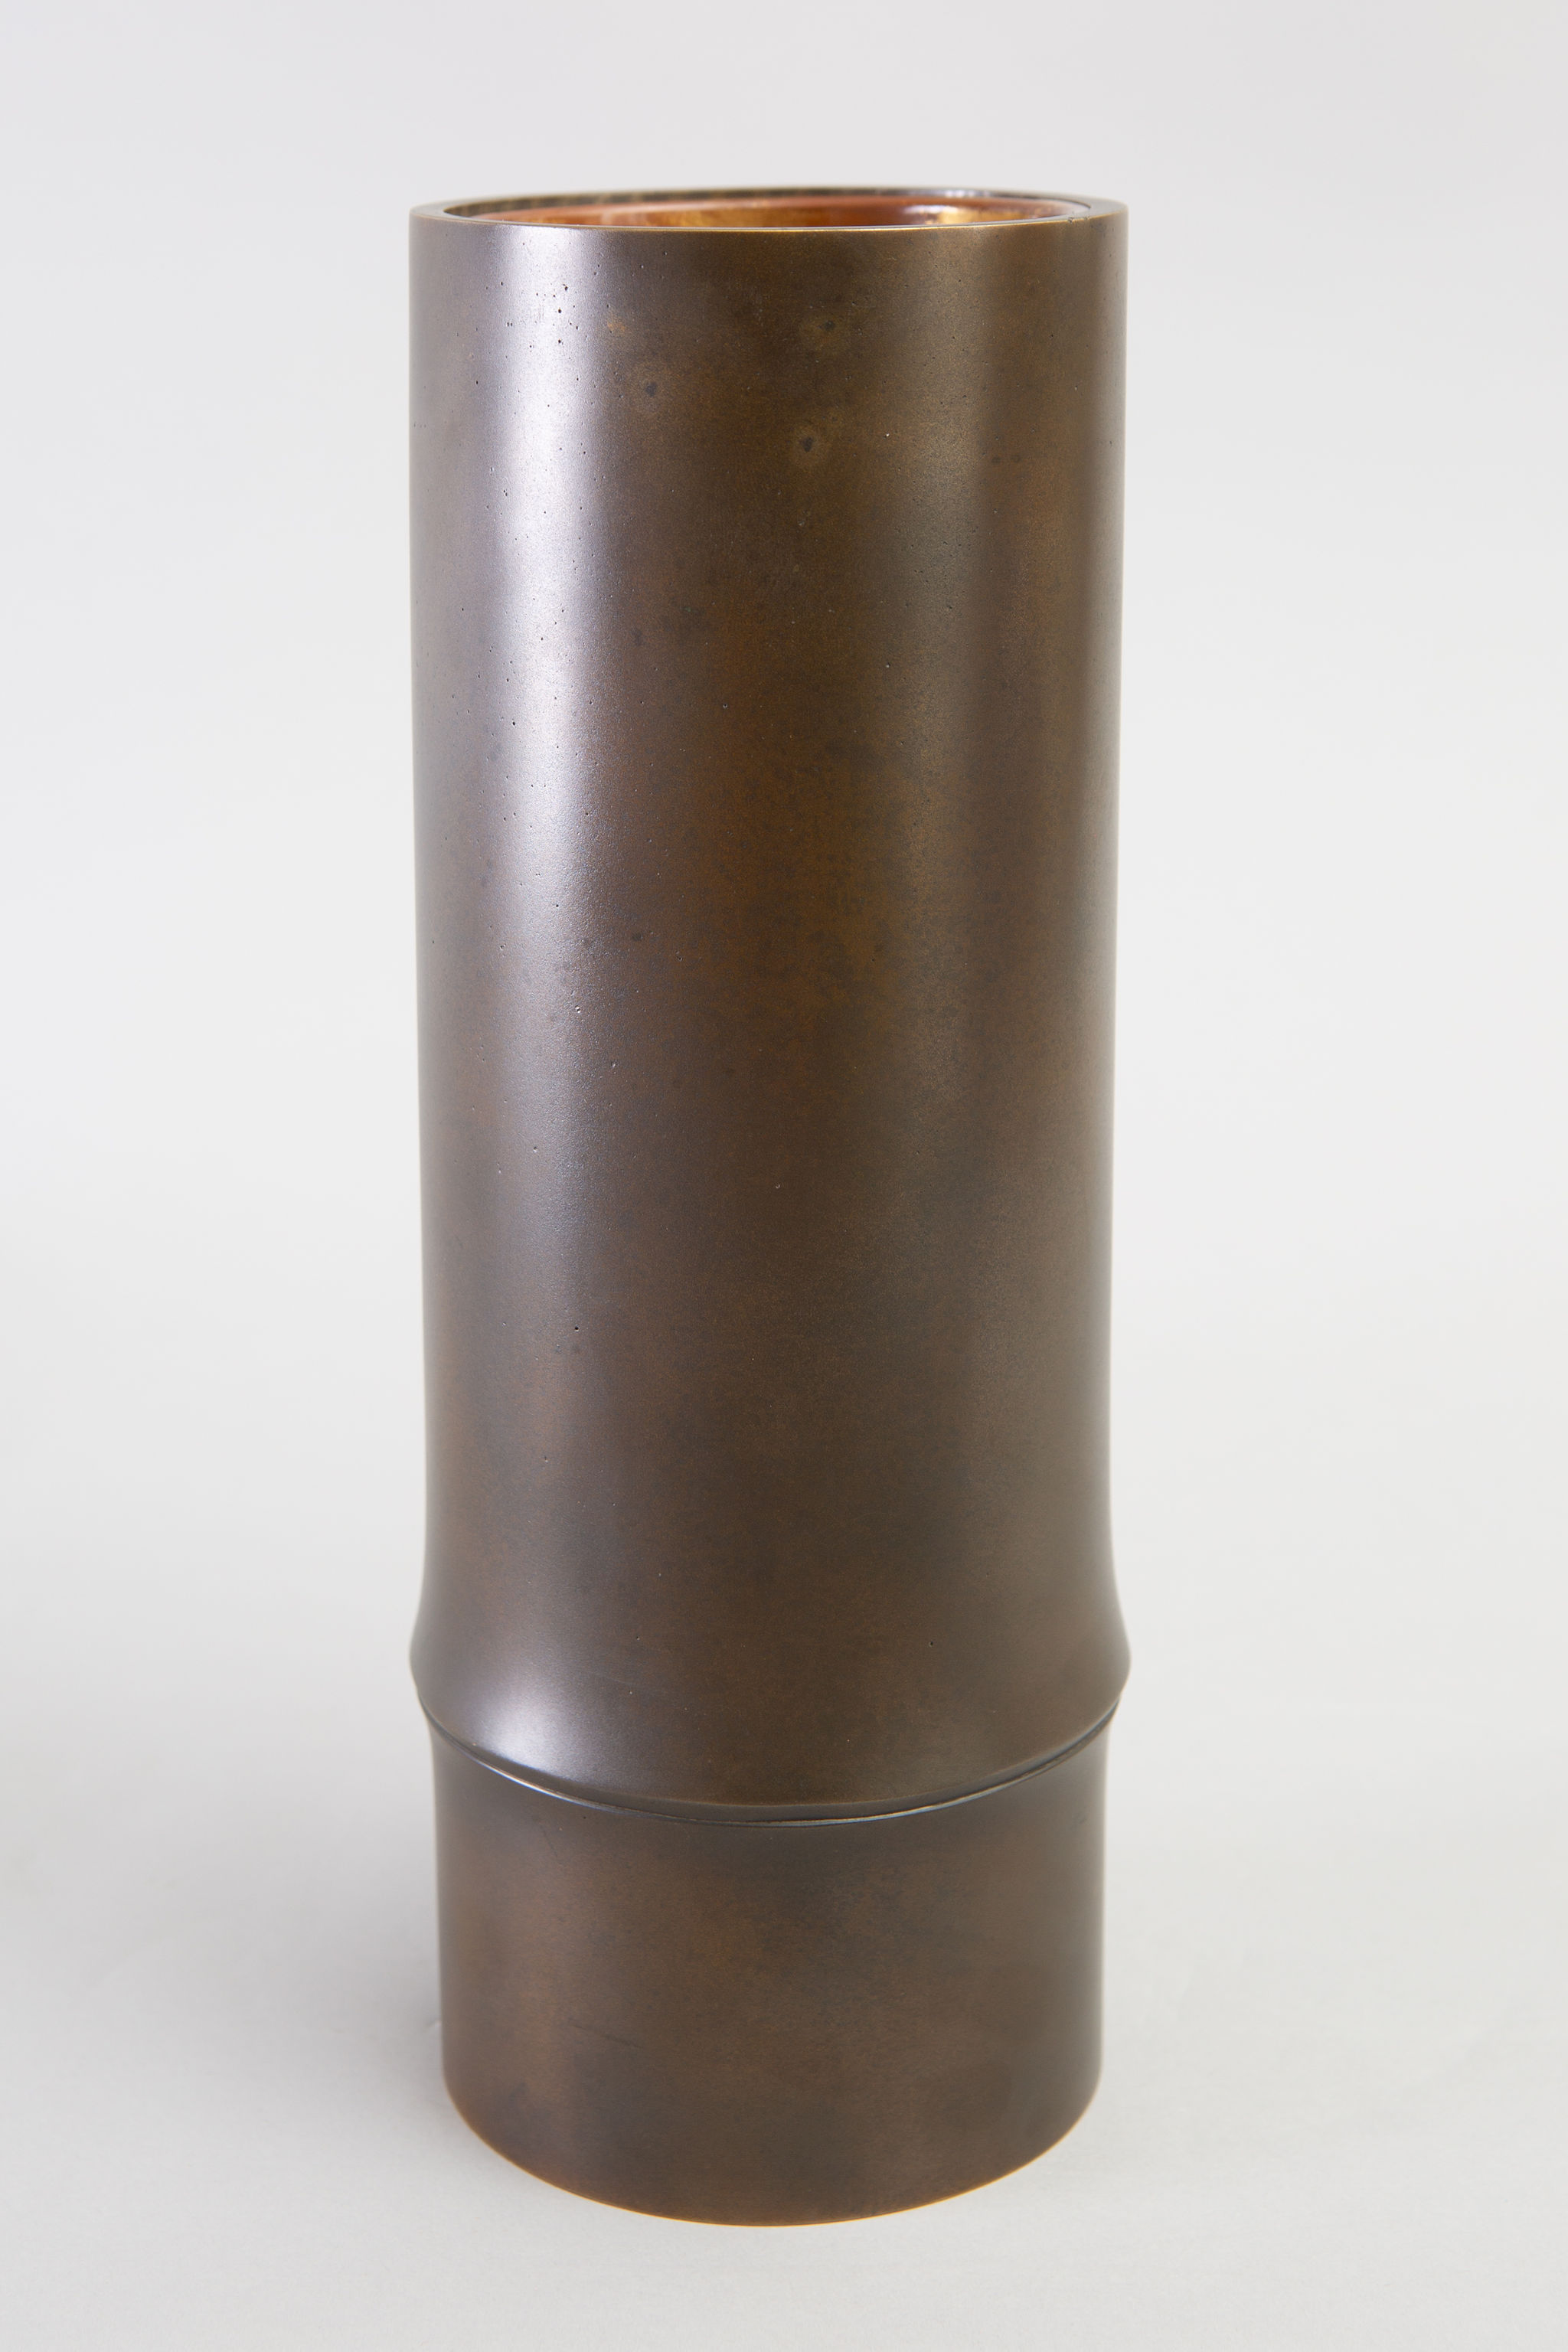 Japanese Bronze Vase in Bamboo Form